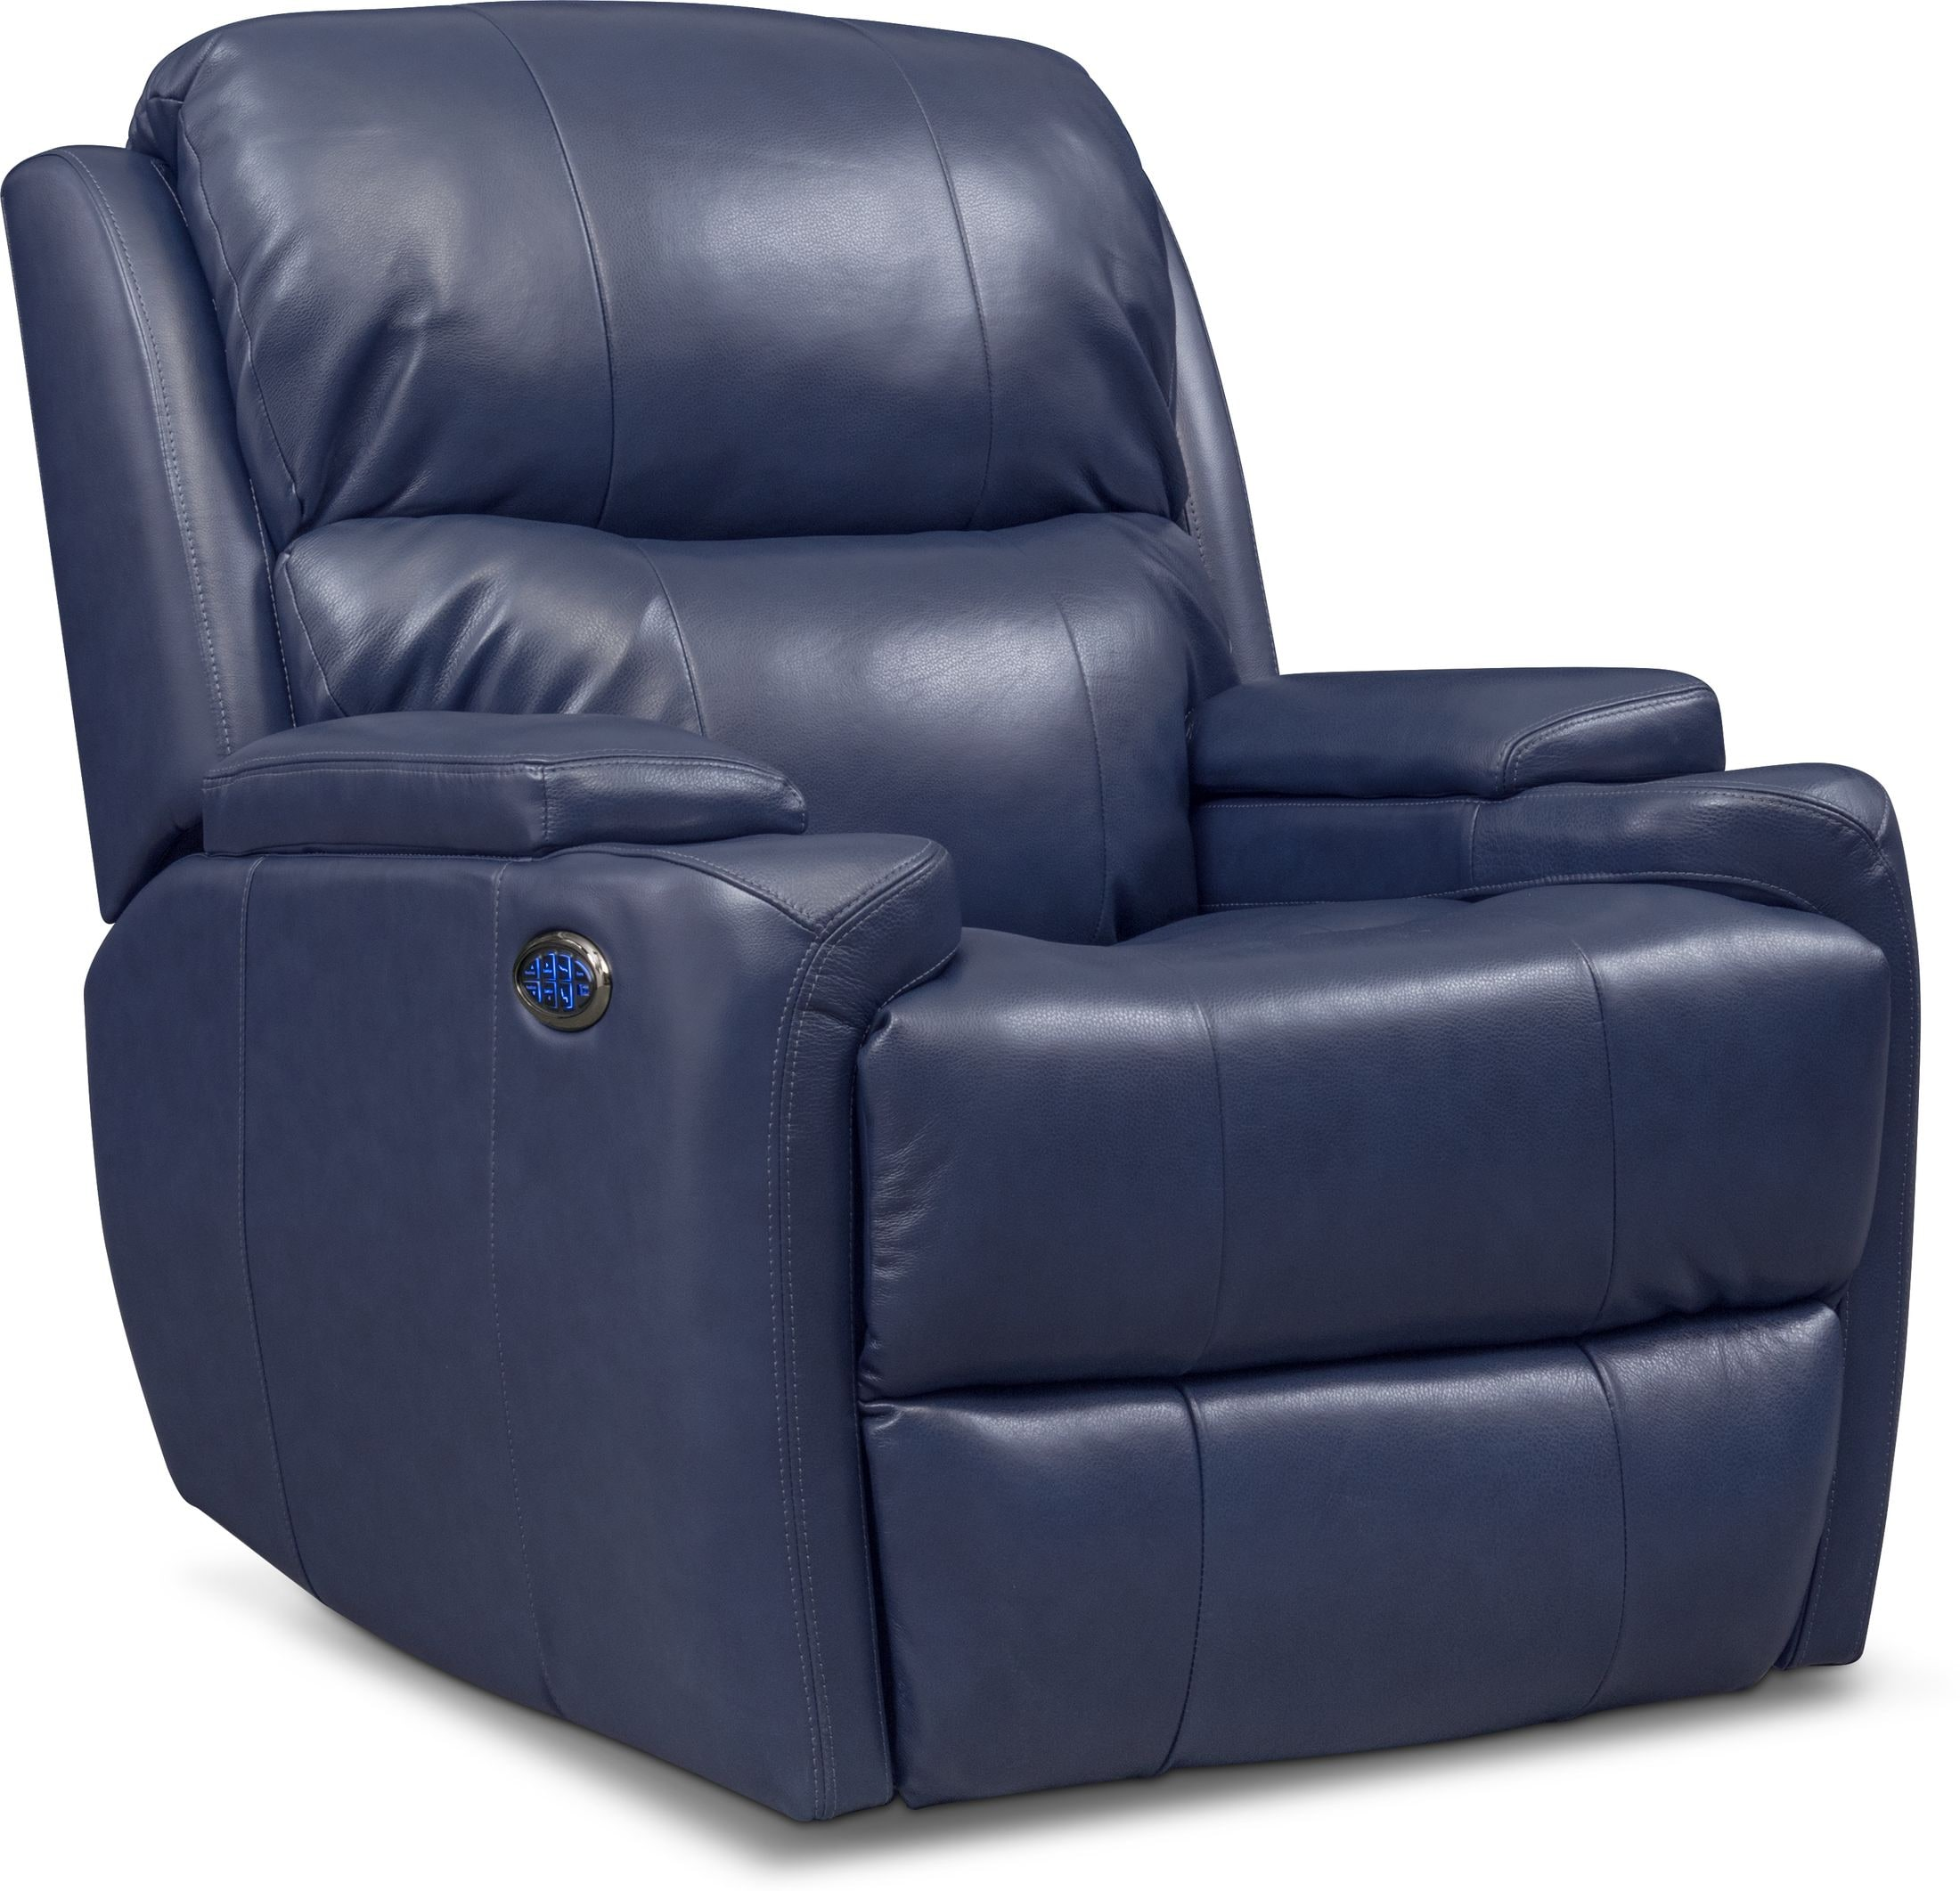 Living Room Furniture - Omega Triple-Power Leather Recliner